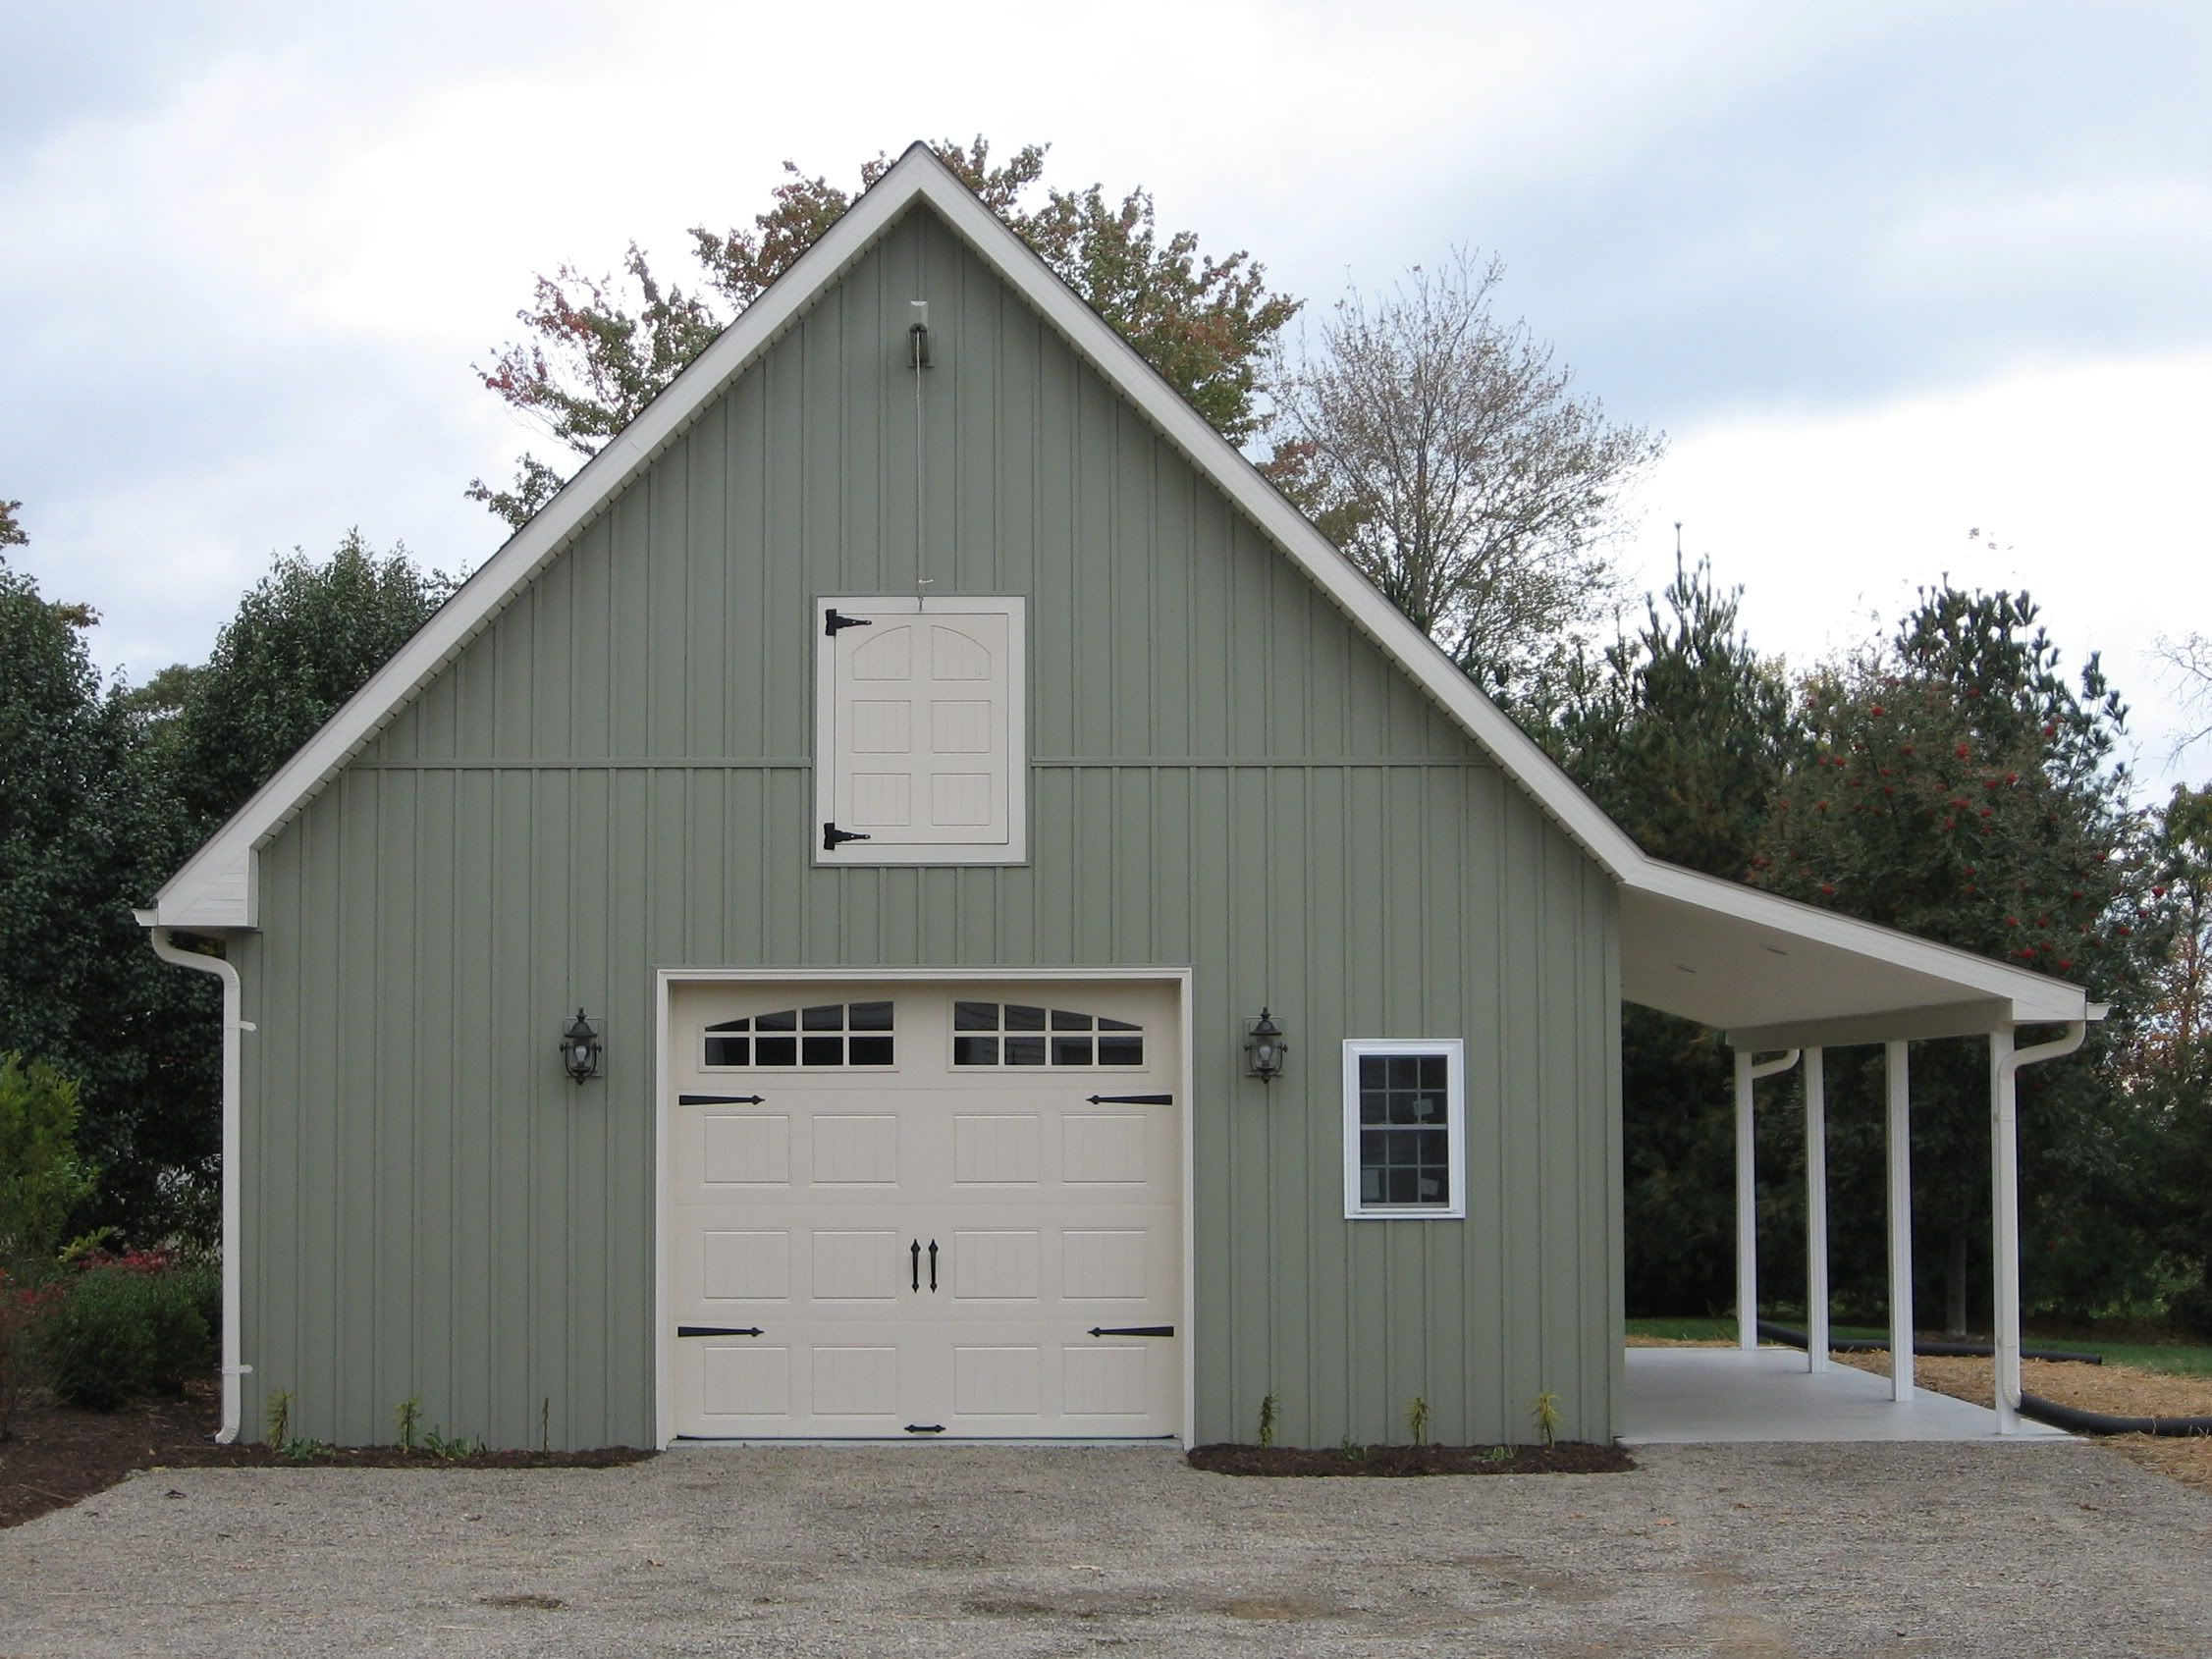 24 39 x 24 39 main garage body with an 8 39 x 9 39 overhead garage for Pole barn garage plans